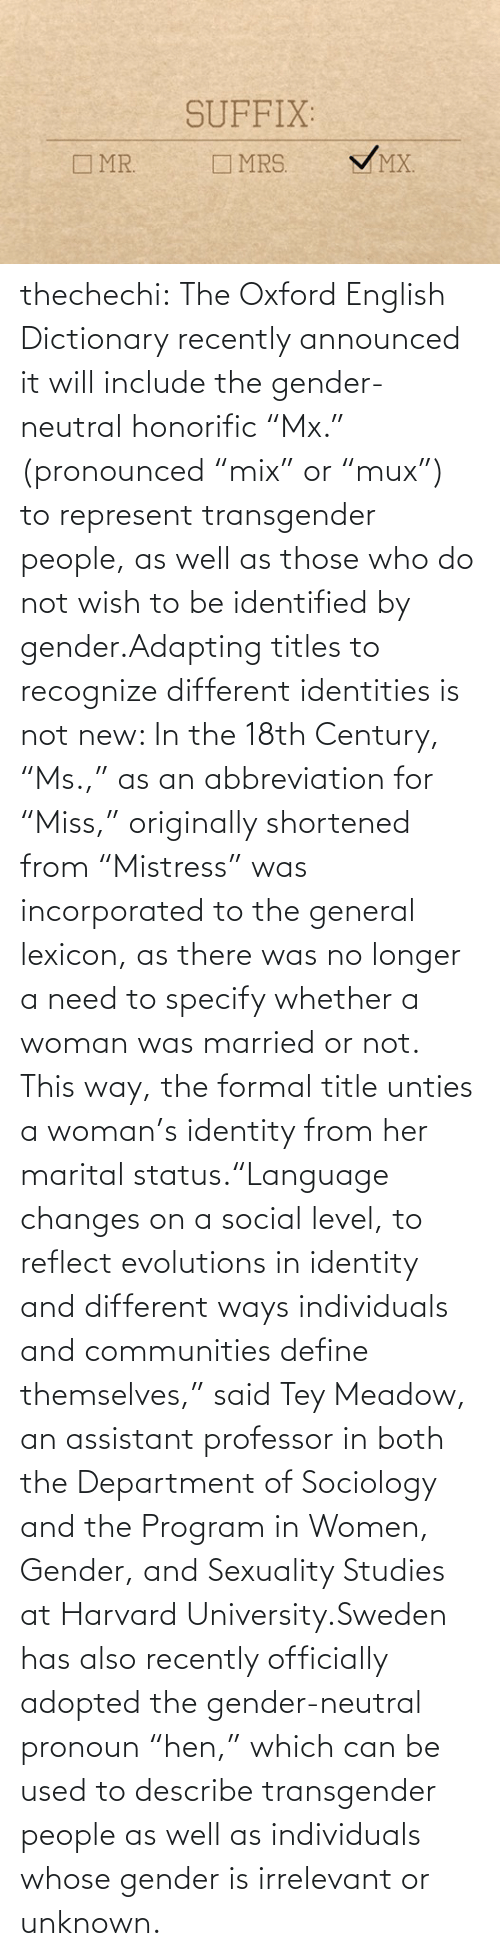 "Specify: SUFFIX:  VMX.  O MR.  O MRS. thechechi:    The Oxford English Dictionary recently announced it will include the gender-neutral honorific ""Mx."" (pronounced ""mix"" or ""mux"") to represent transgender people, as well as those who do not wish to be identified by gender.Adapting titles to recognize different identities is not new: In the 18th Century, ""Ms.,"" as an abbreviation for ""Miss,"" originally shortened from ""Mistress"" was incorporated to the general lexicon, as there was no longer a need to specify whether a woman was married or not. This way, the formal title unties a woman's identity from her marital status.""Language changes on a social level, to reflect evolutions in identity and different ways individuals and communities define themselves,"" said Tey Meadow, an assistant professor in both the Department of Sociology and the Program in Women, Gender, and Sexuality Studies at Harvard University.Sweden has also recently officially adopted the gender-neutral pronoun ""hen,"" which can be used to describe transgender people as well as individuals whose gender is irrelevant or unknown."